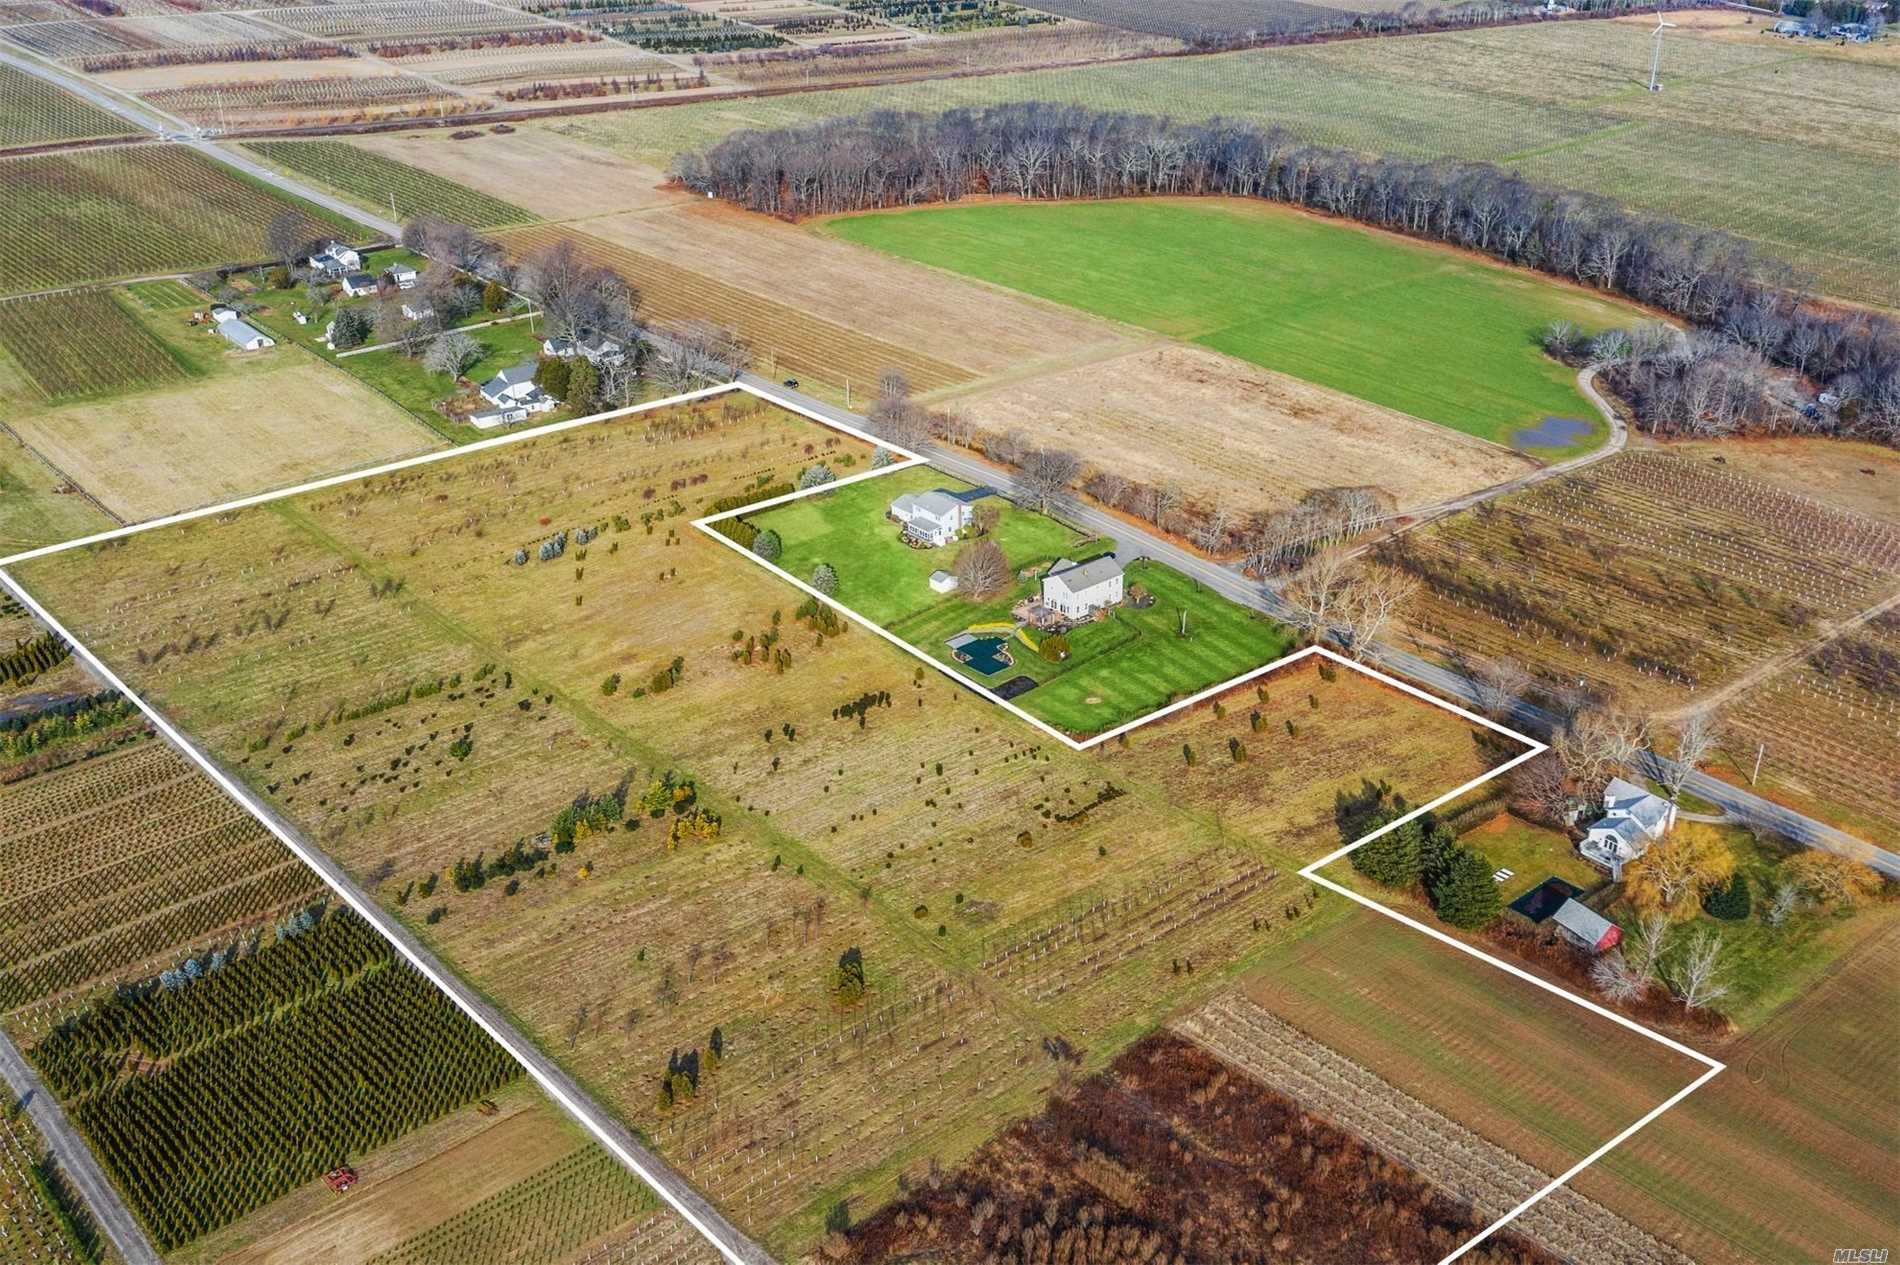 Looking To Do A Vineyard Or Nursery And Build Your Home? Look No Further, This Location And Westerly Views Are The Best In Cutchogue. Full Rights Property. Potential For Additional Building Lots Exist. 2 Acre Zoning